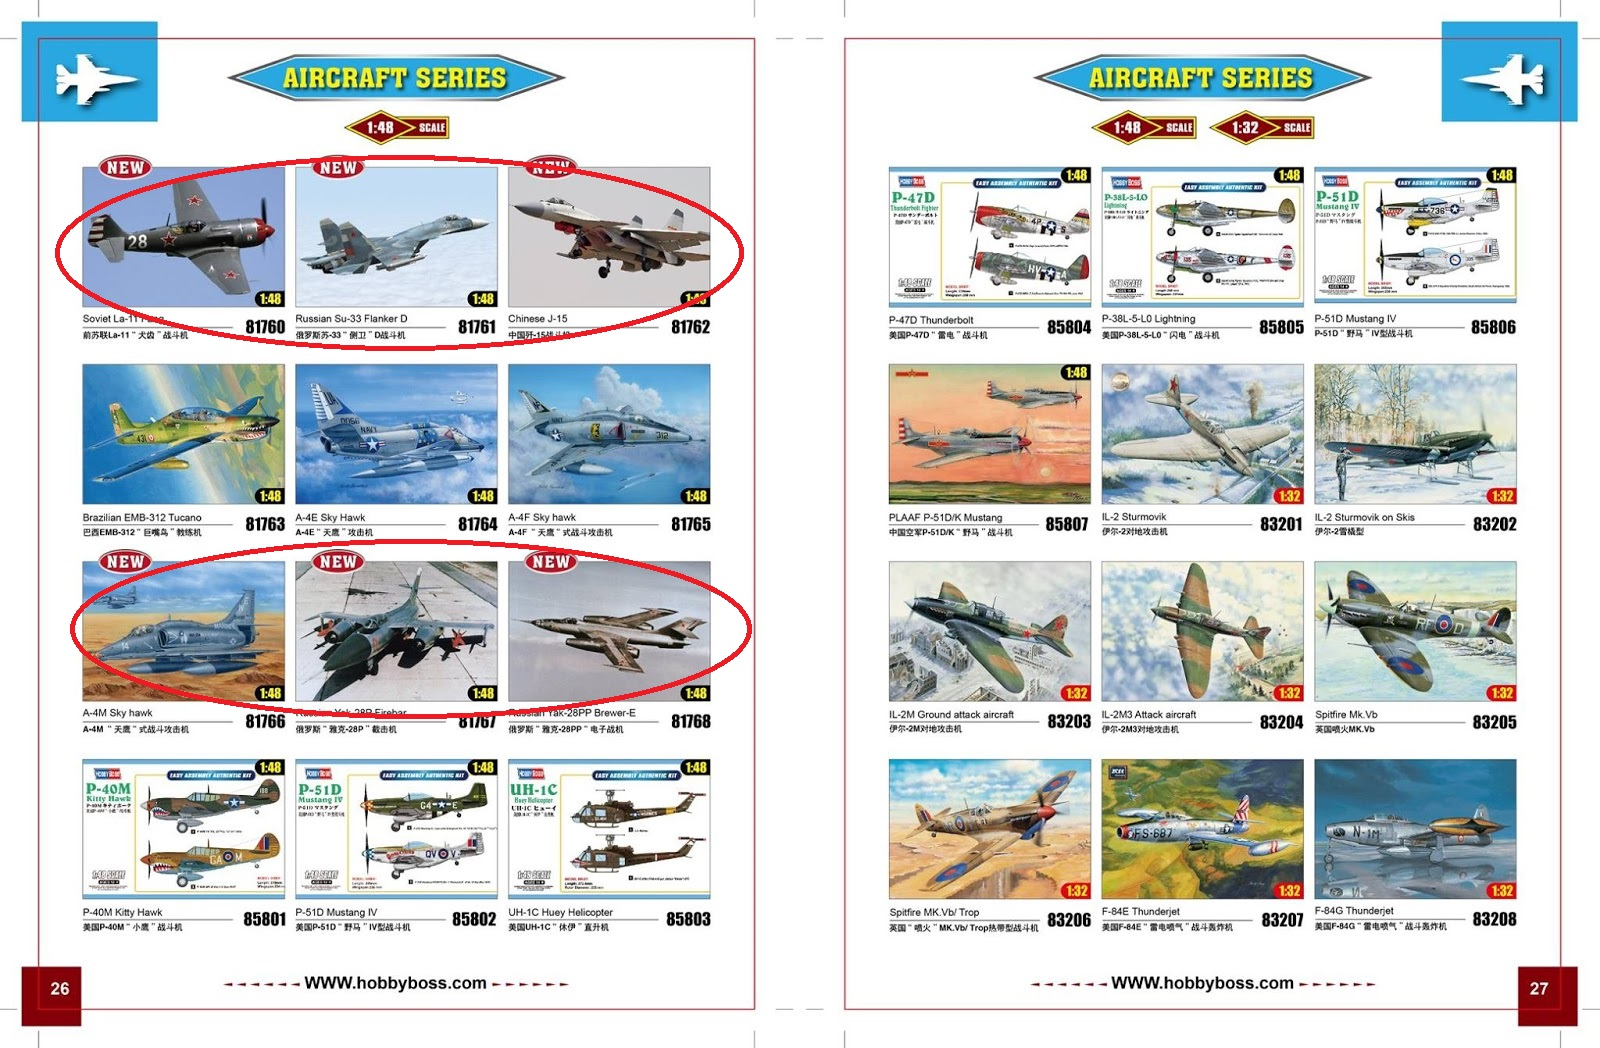 Hobbyboss 2018 Catalogue (14).jpg